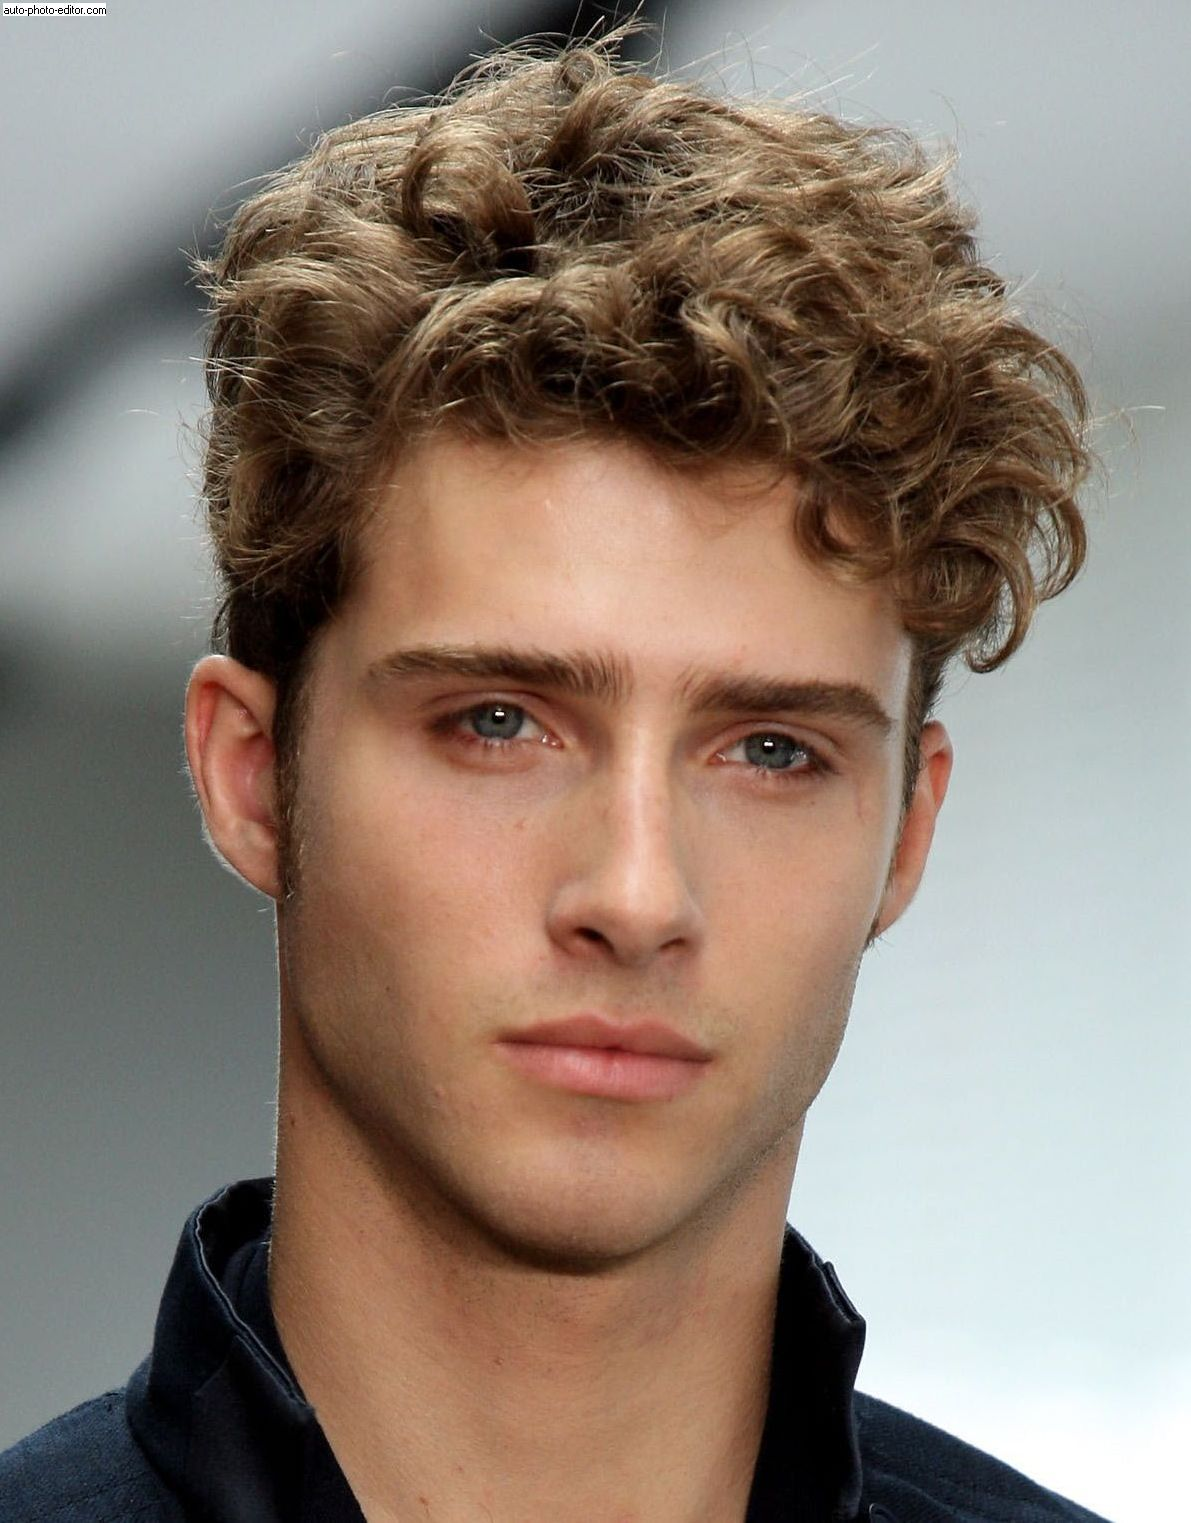 Curly Hairstyles For Men | Moda para caballeros- Fashion for Men ...